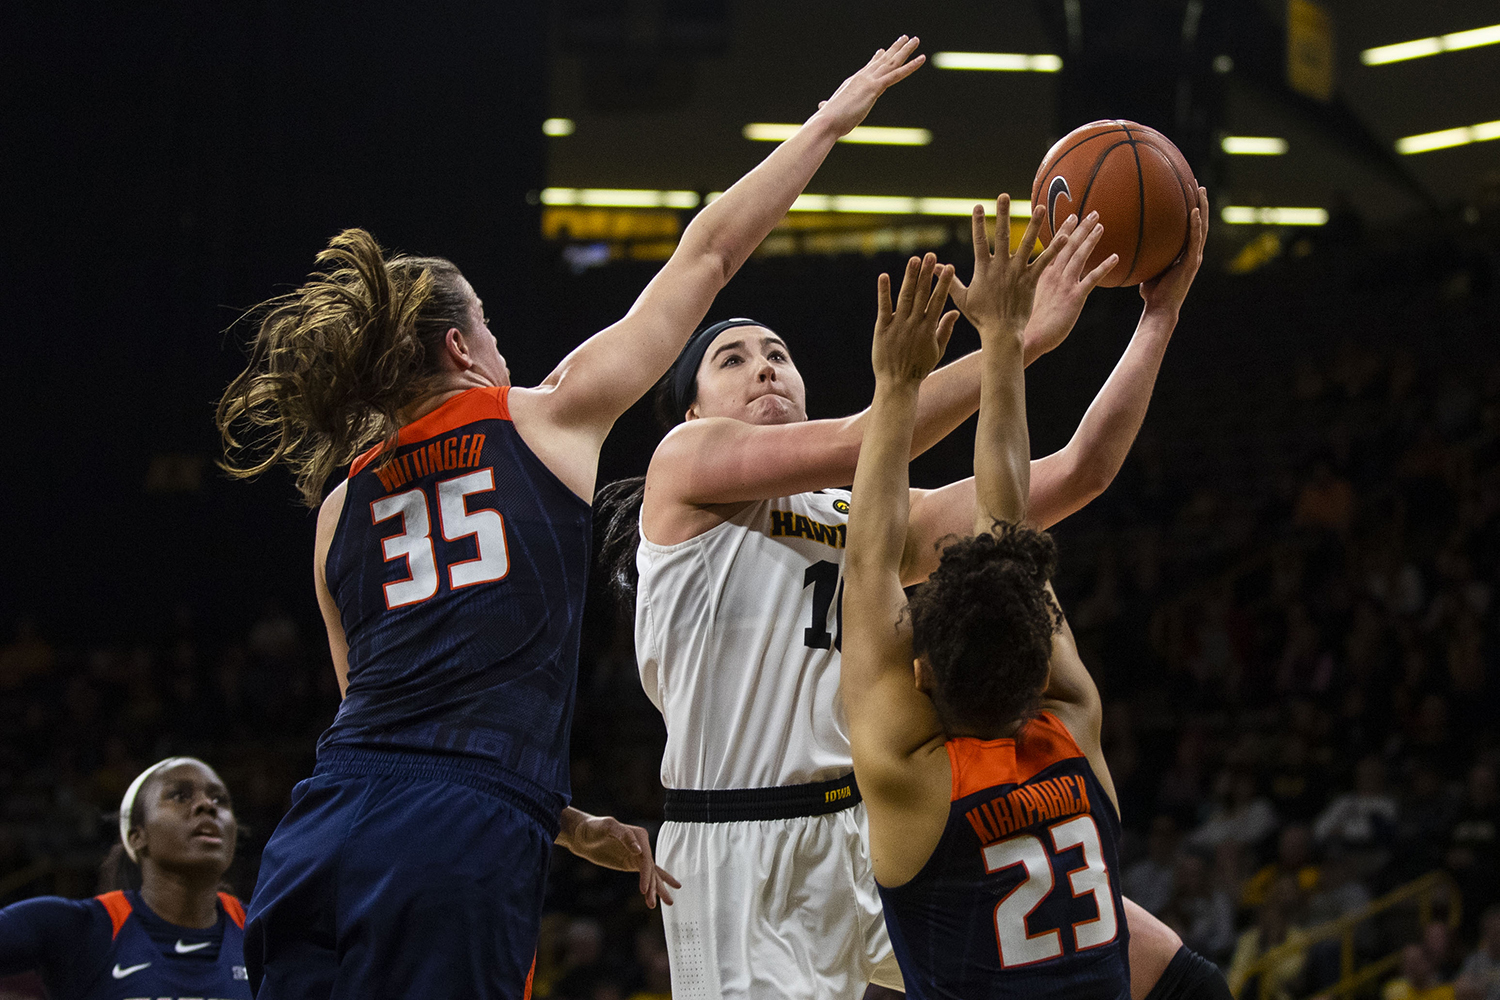 Iowa+center+Megan+Gustafson+looks+to+the+basket+during+the+Iowa%2FIllinois+women%27s+basketball+game+at+Carver-Hawkeye+Arena+on+Thursday%2C+February+14%2C+2019.+The+Hawkeyes+defeated+the+Fighting+Illini%2C+88-66.+